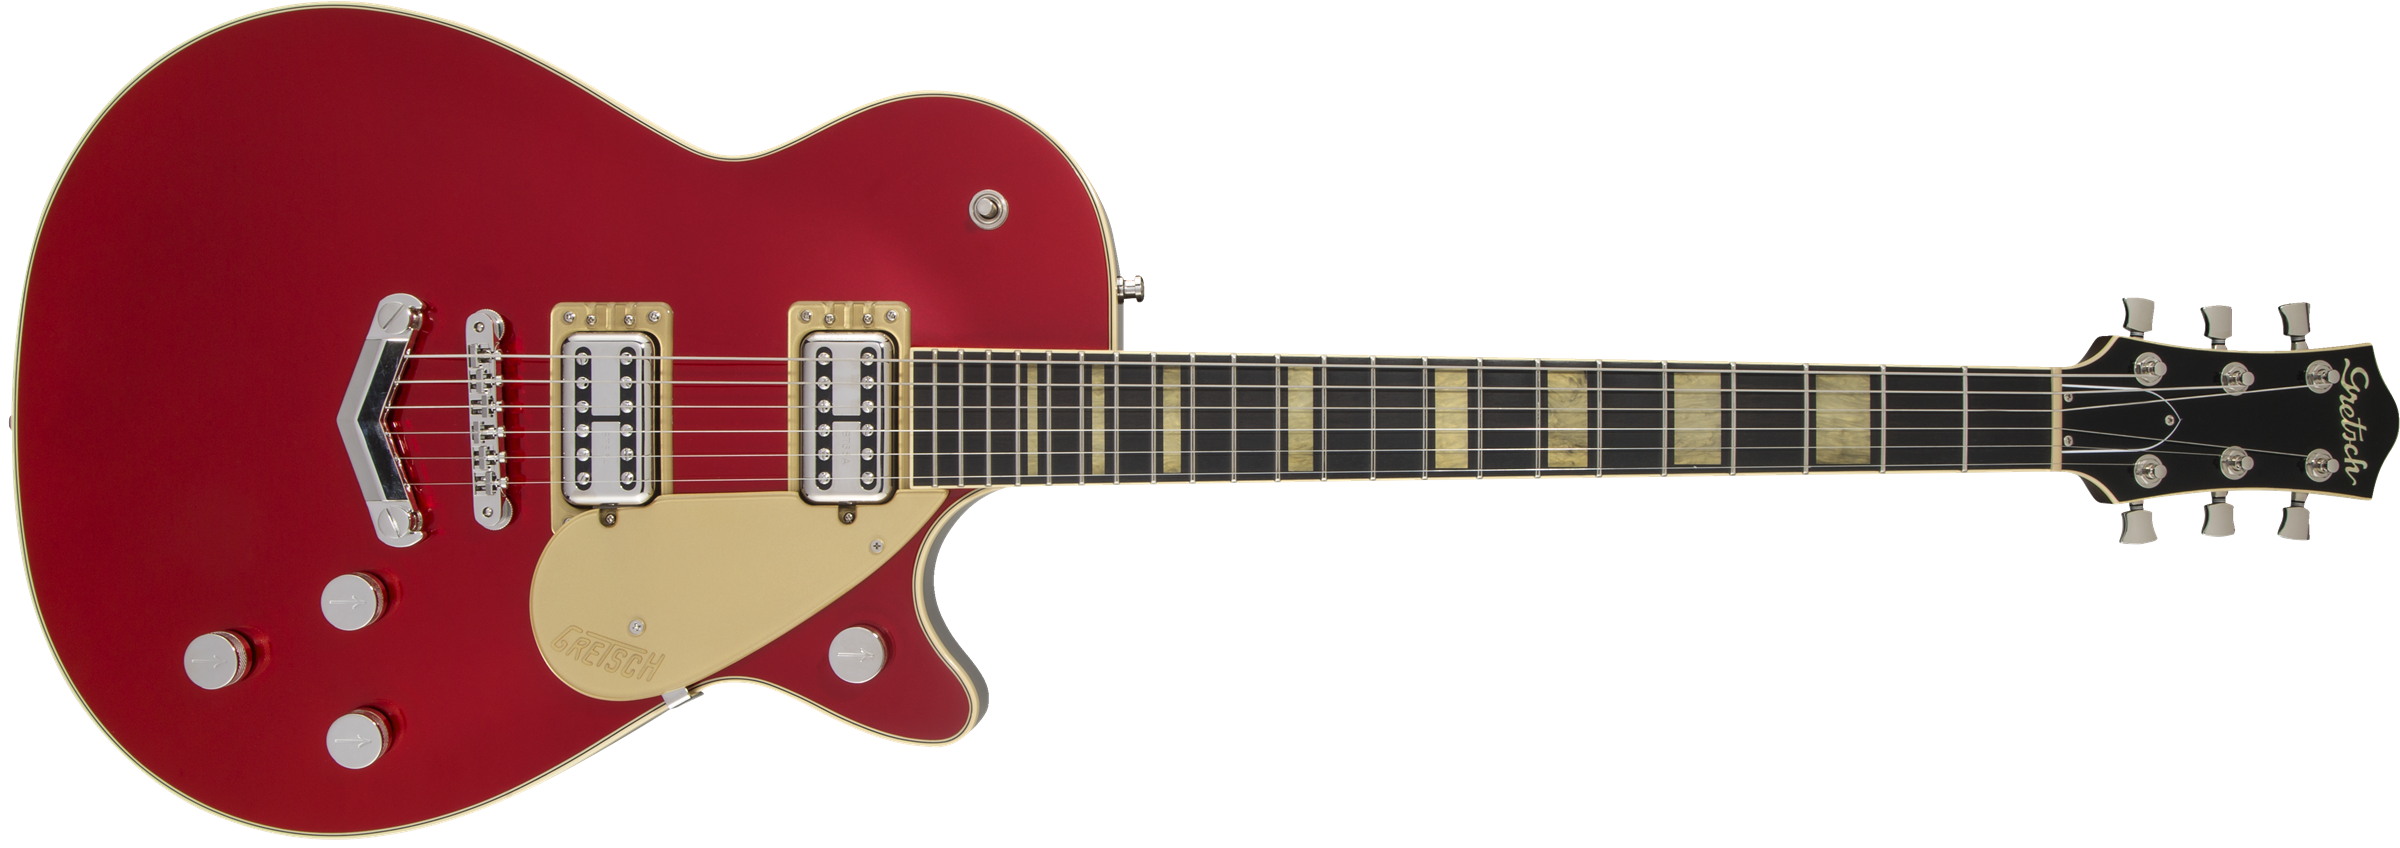 GRETSCH-G6228-Players-Edition-Jet-BT-with-V-Stoptail-Rosewood-Fingerboard-Candy-Apple-Red-sku-571002879